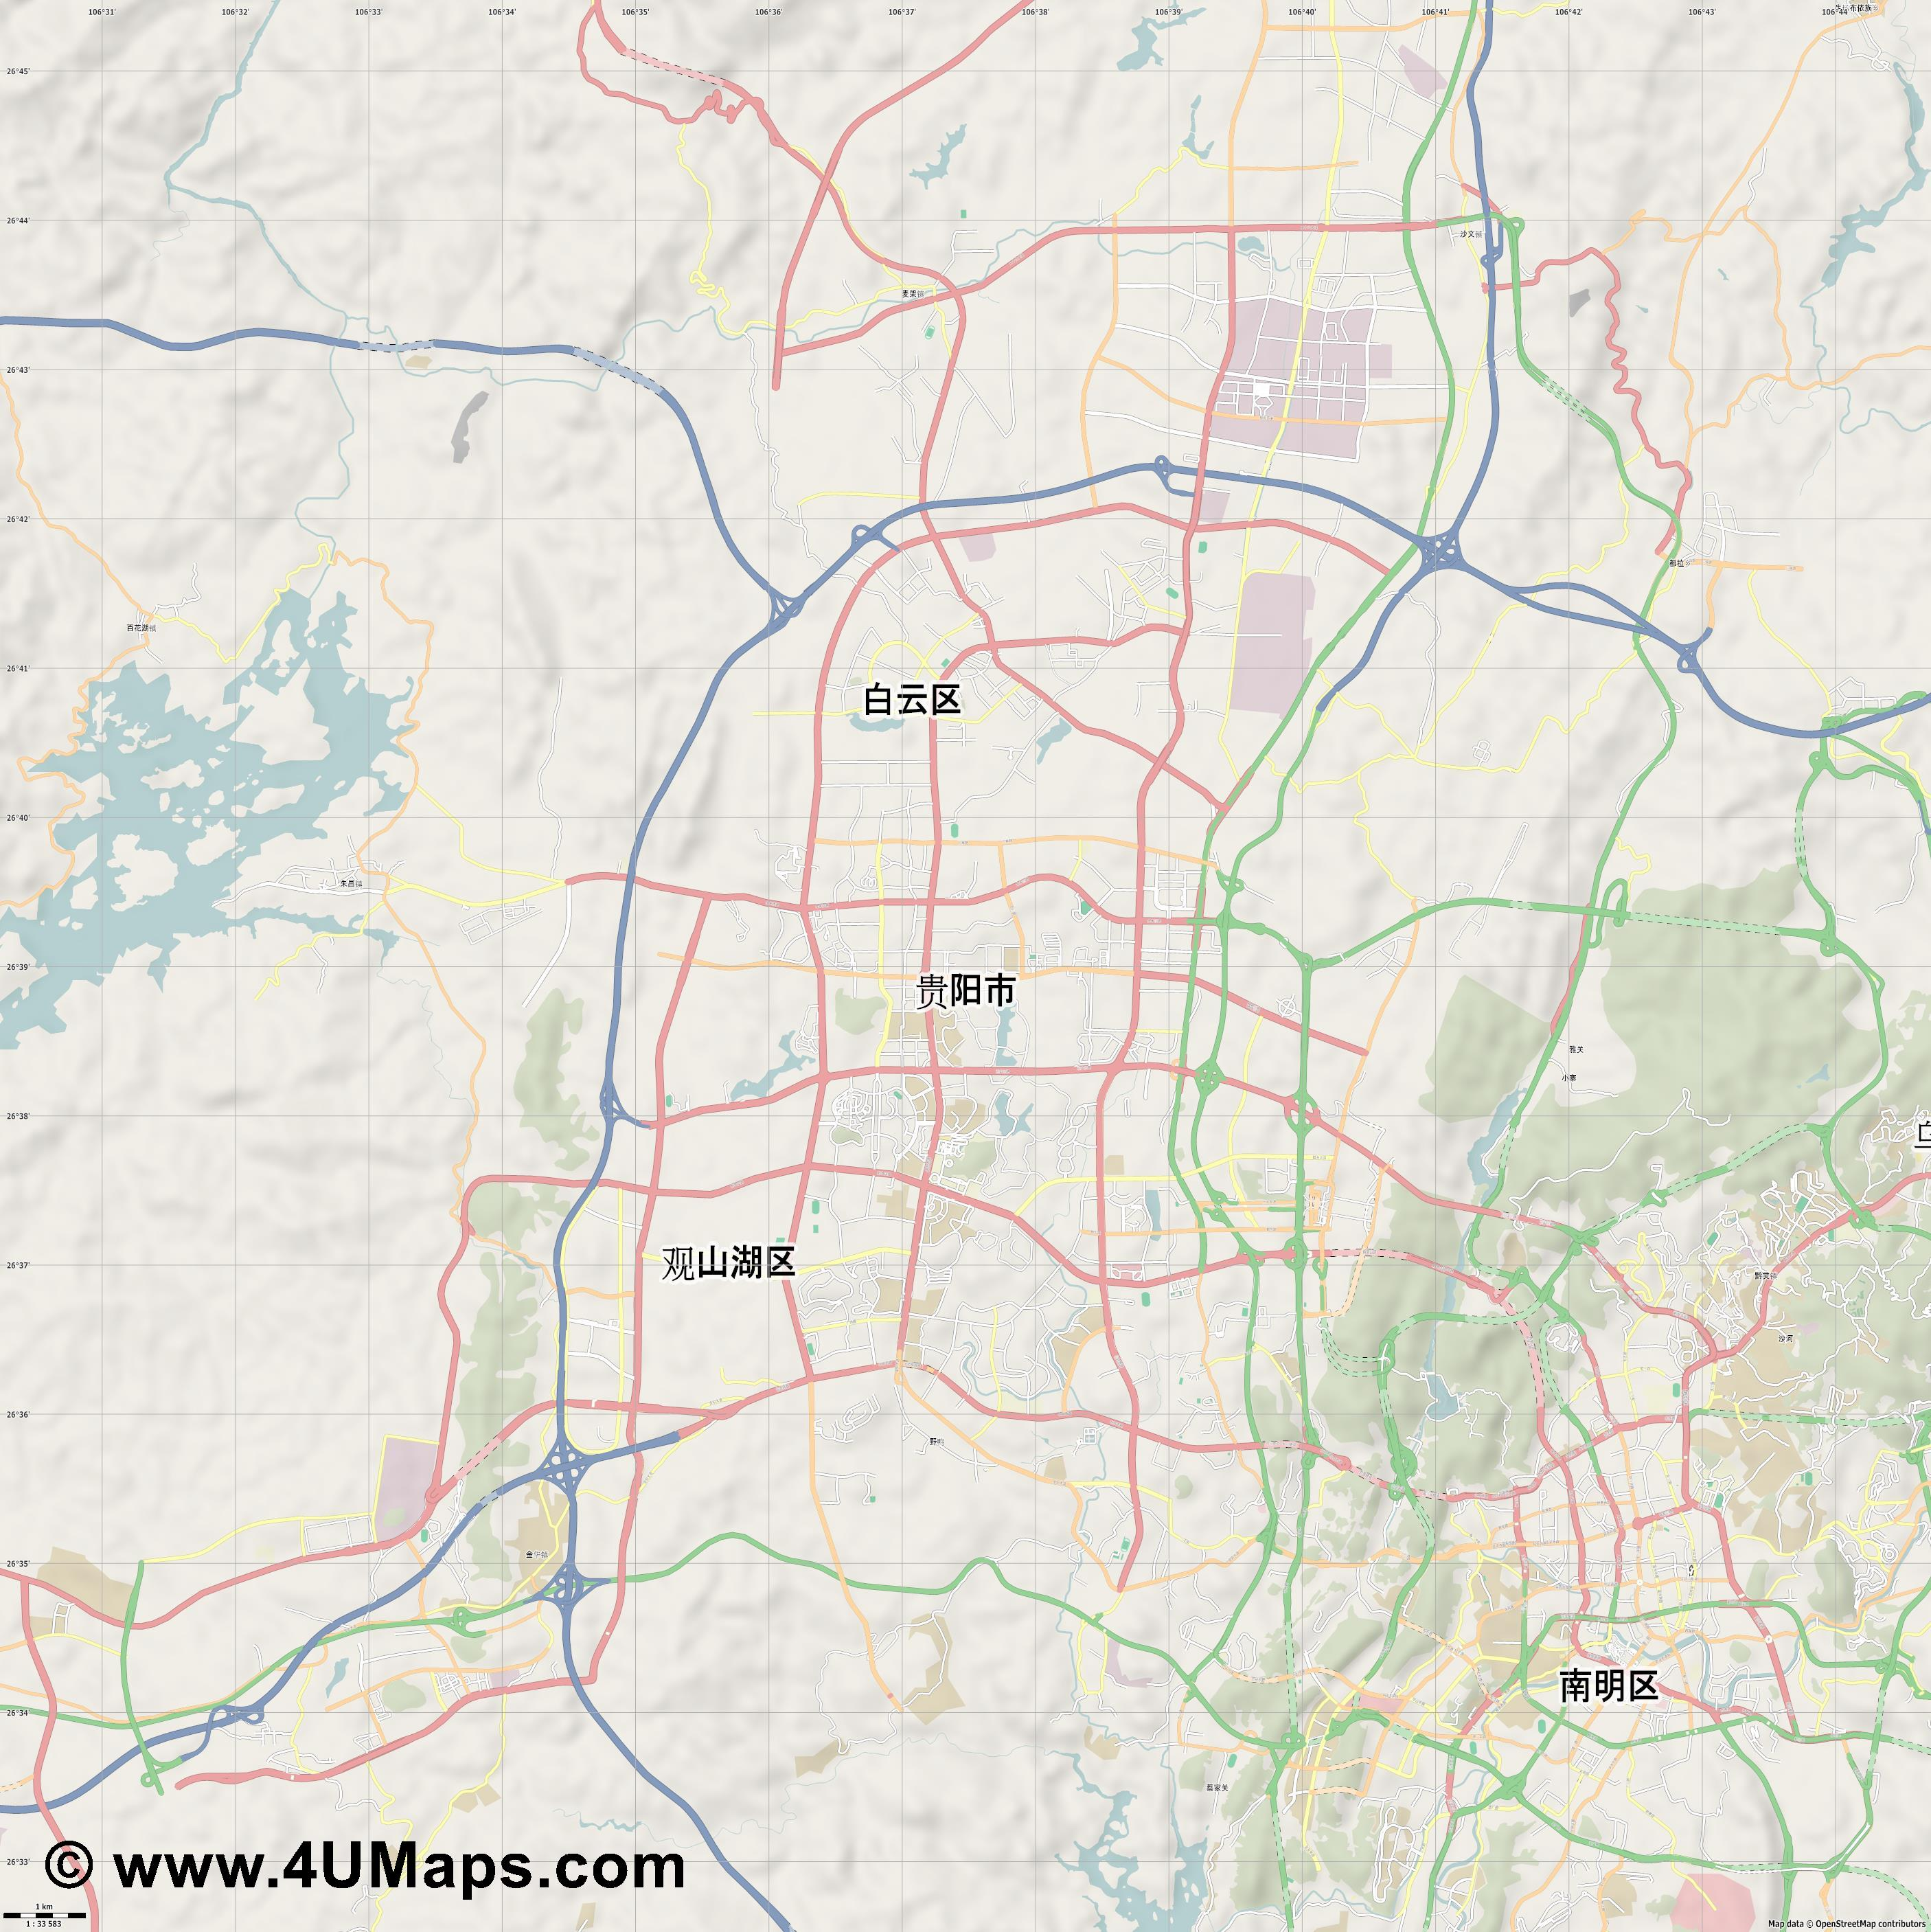 贵阳市 Guiyang  jpg high detail, large area preview vector city map